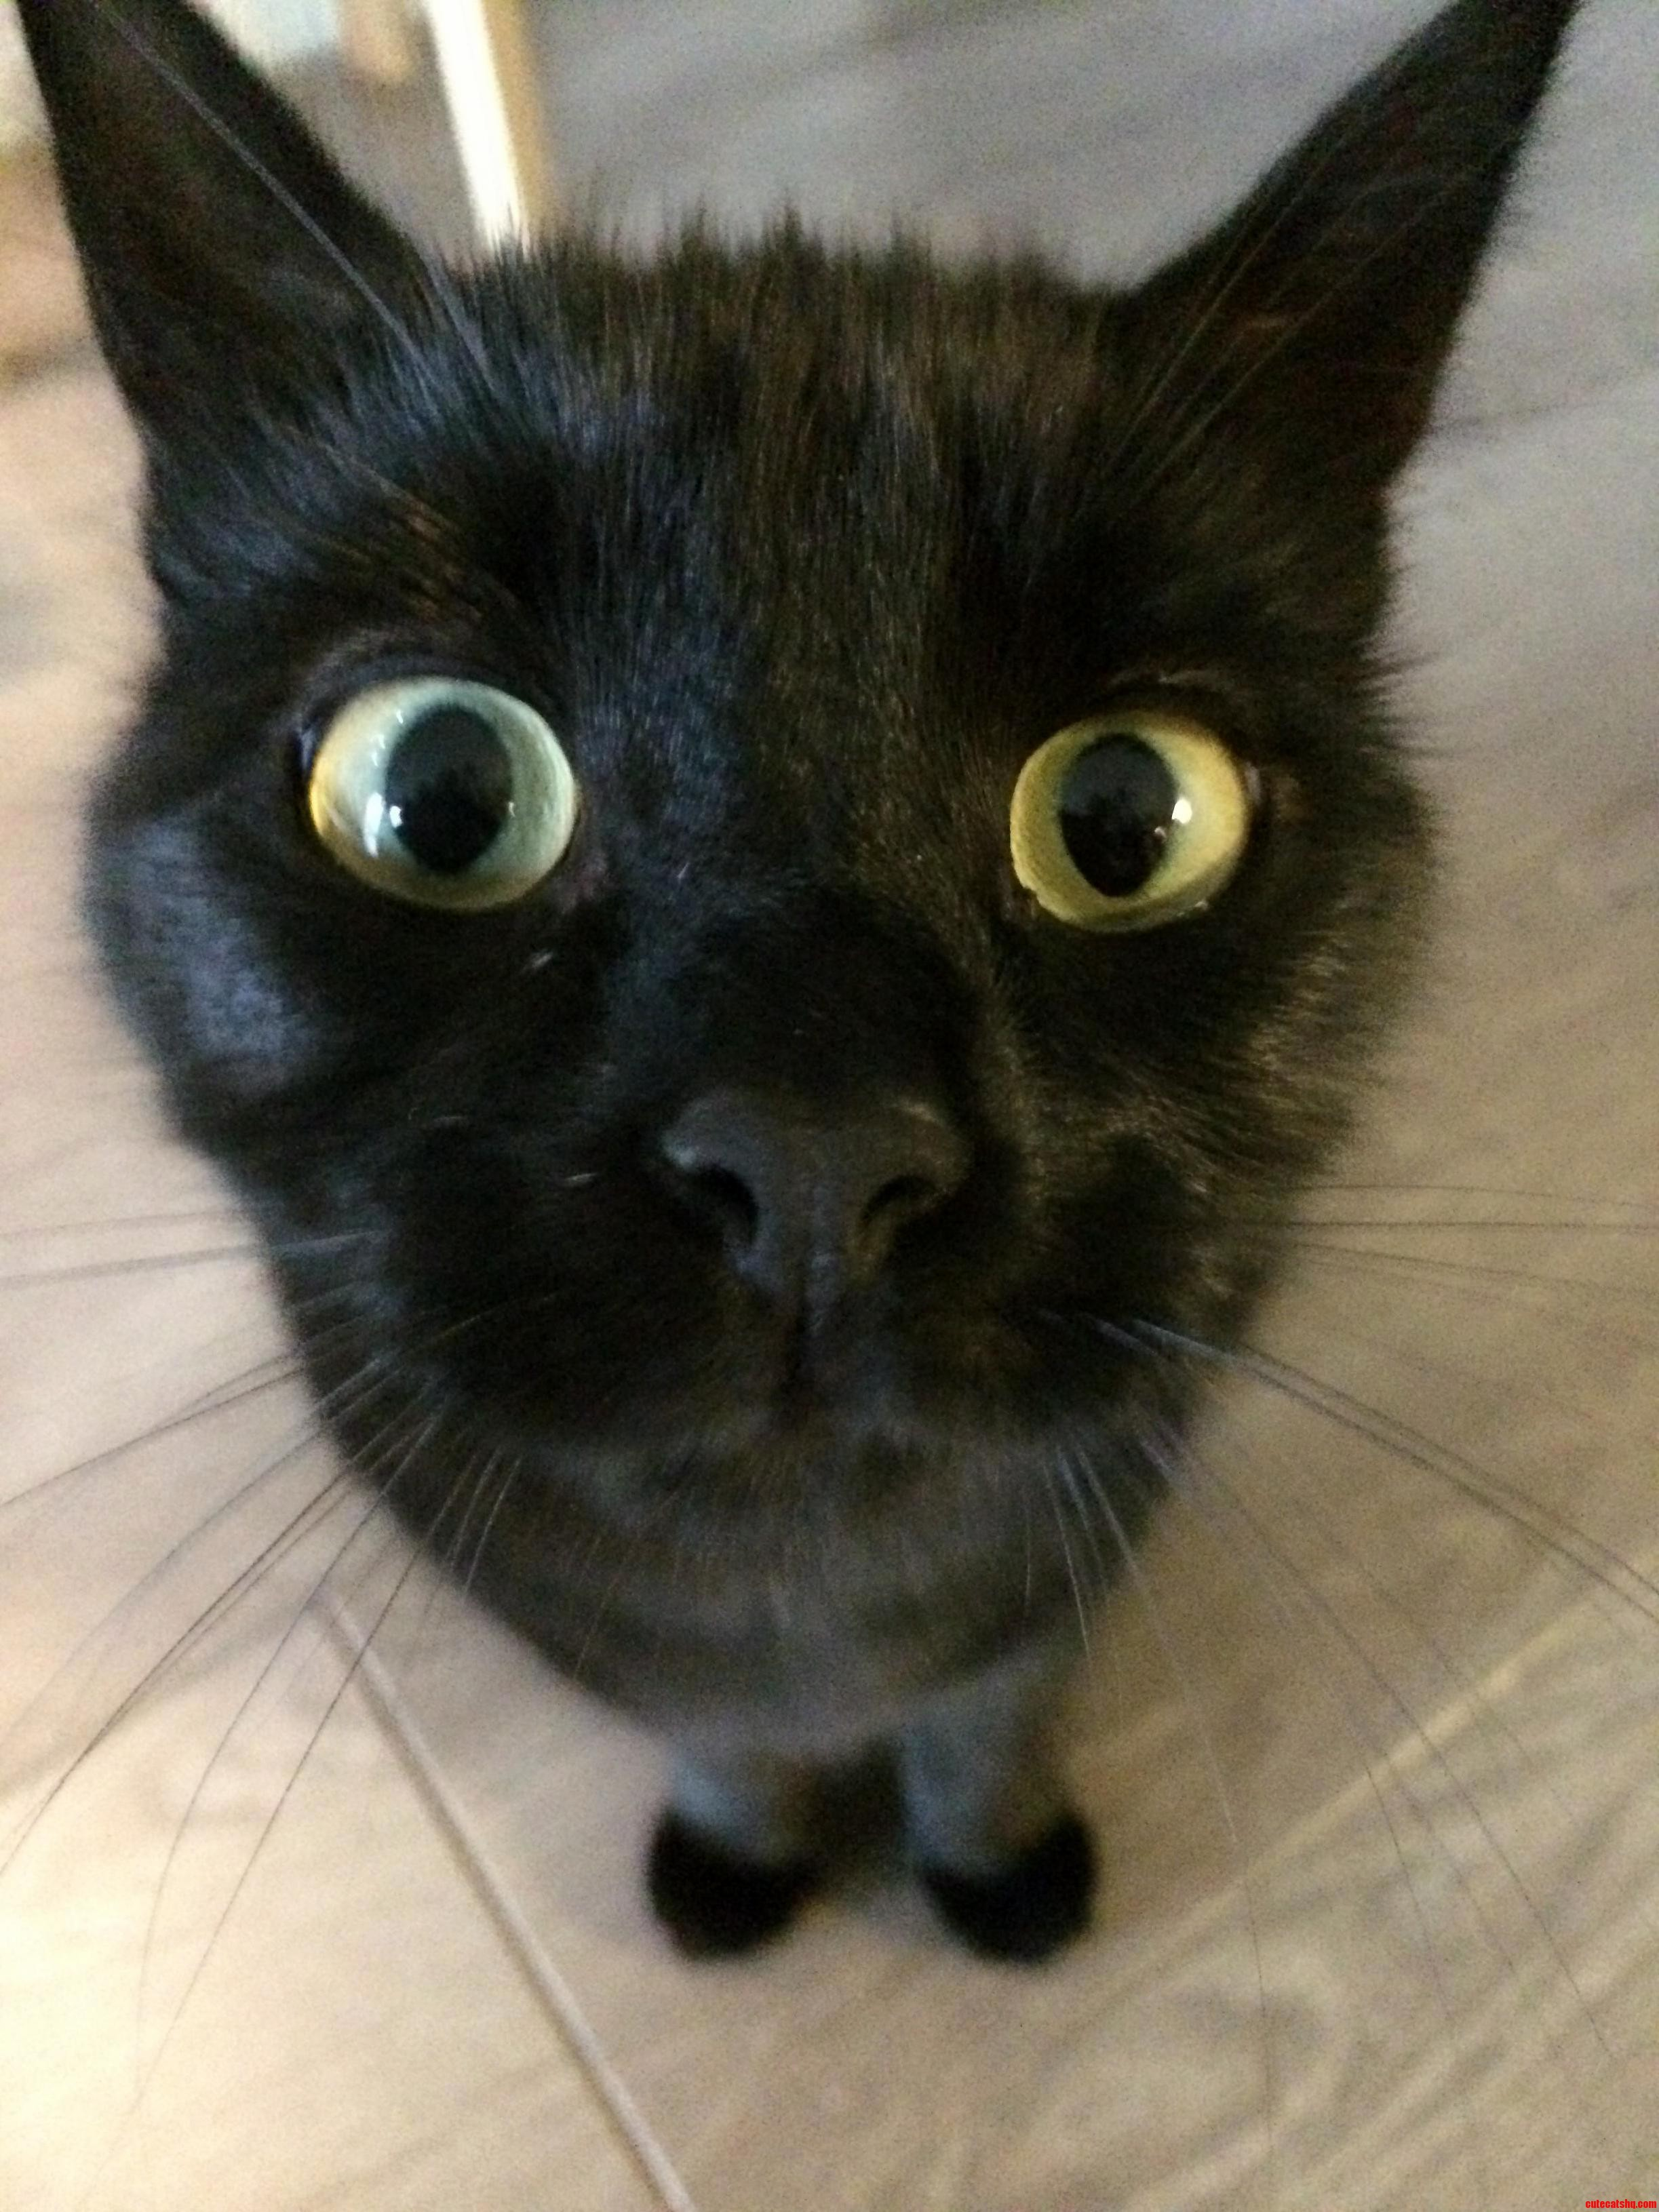 Sandy Is A Curious Cat | Cute cats HQ - Pictures of cute cats and ...